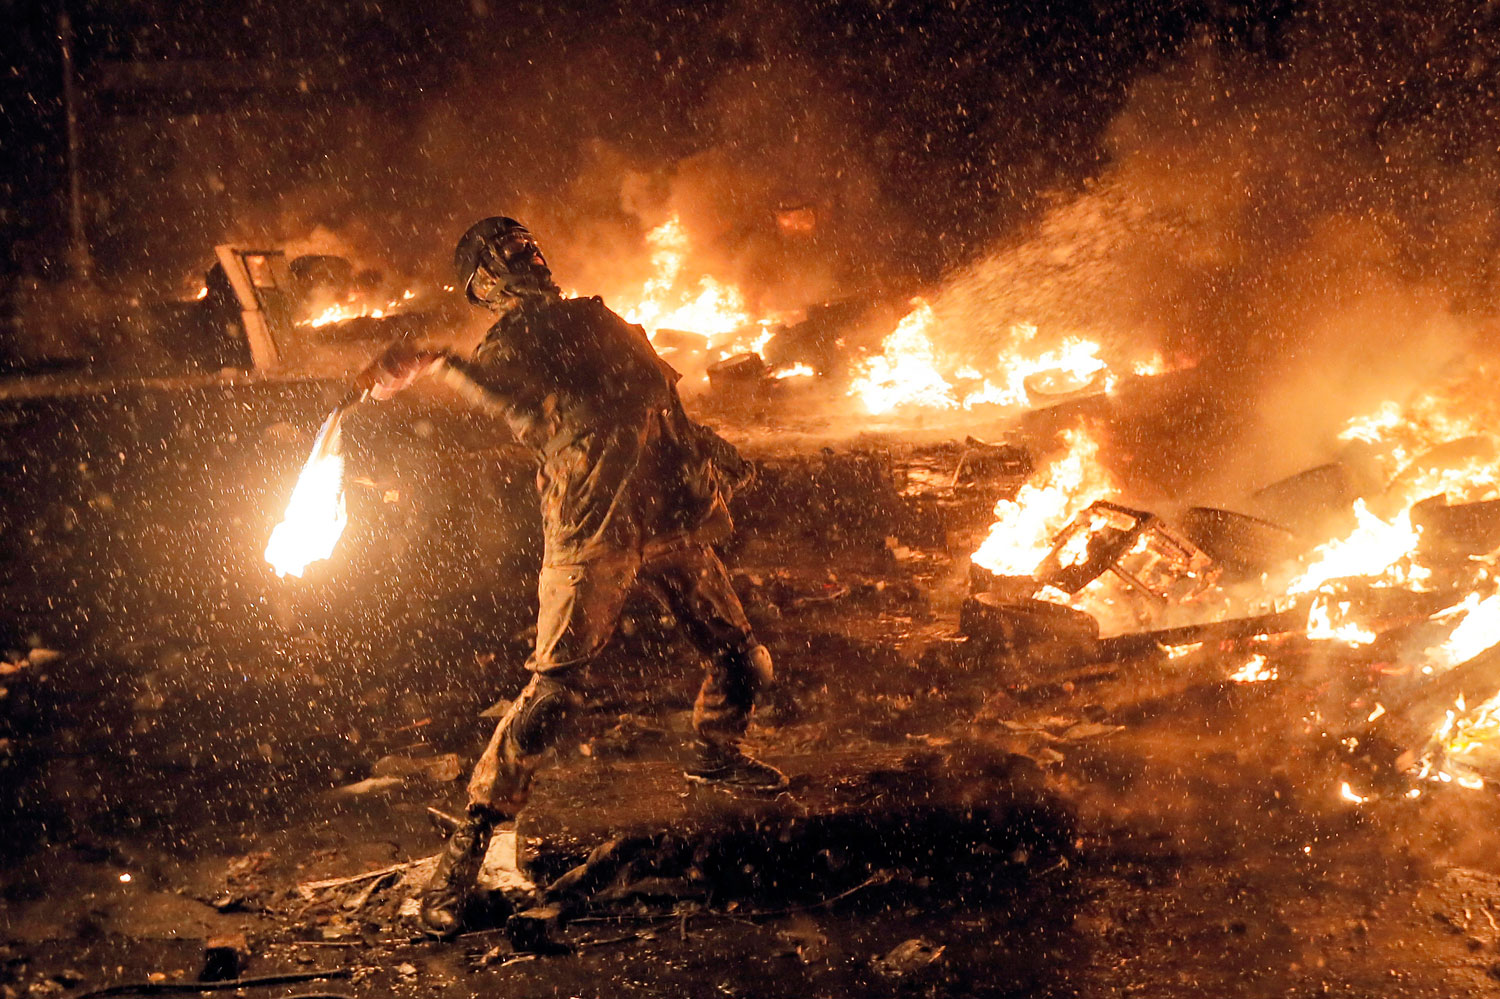 A protester throws a Molotov cocktail during clashes with police in central Kiev, Jan. 22, 2014.